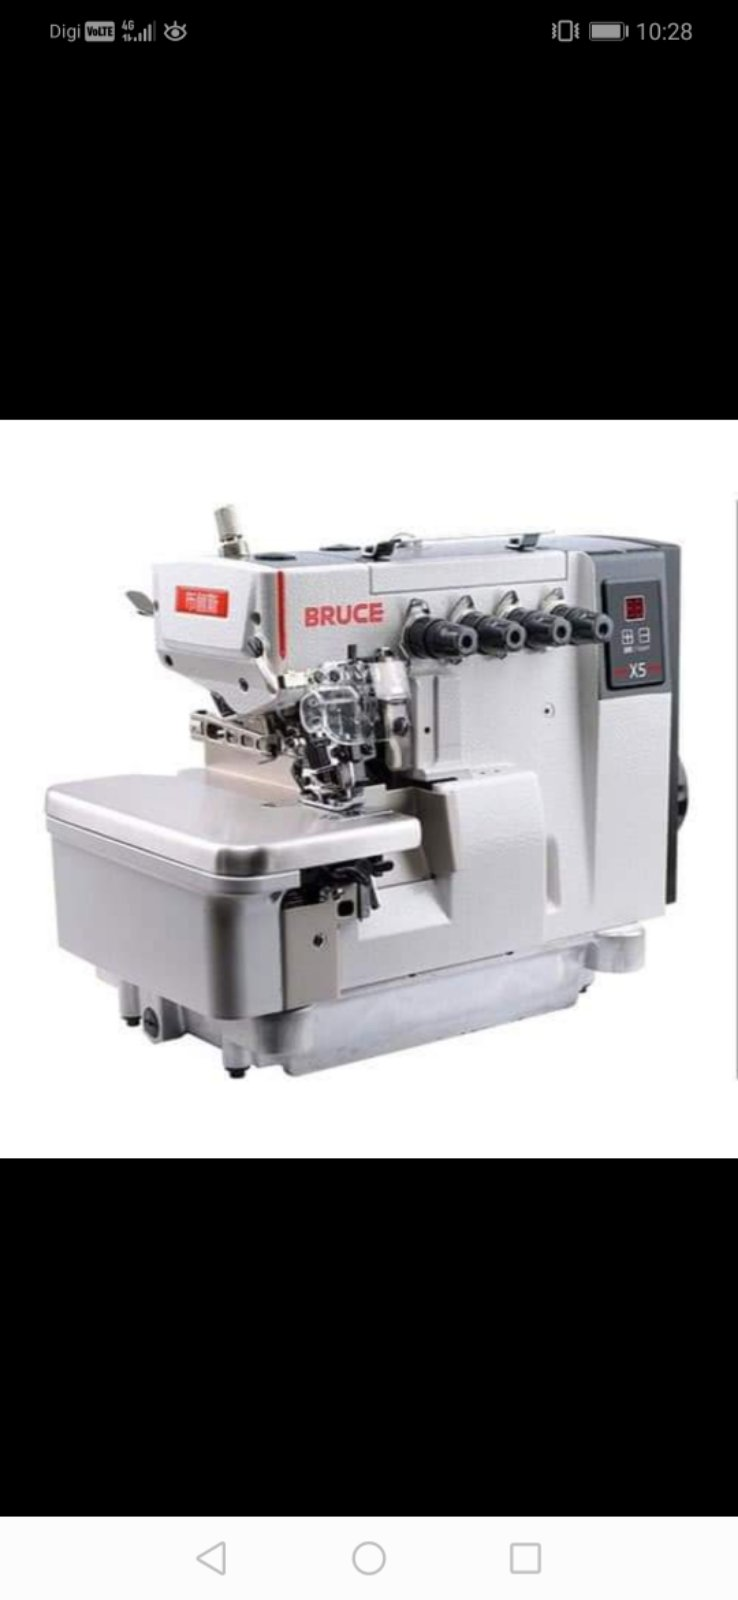 New Bruce Industrial Overlock Sewing Machine